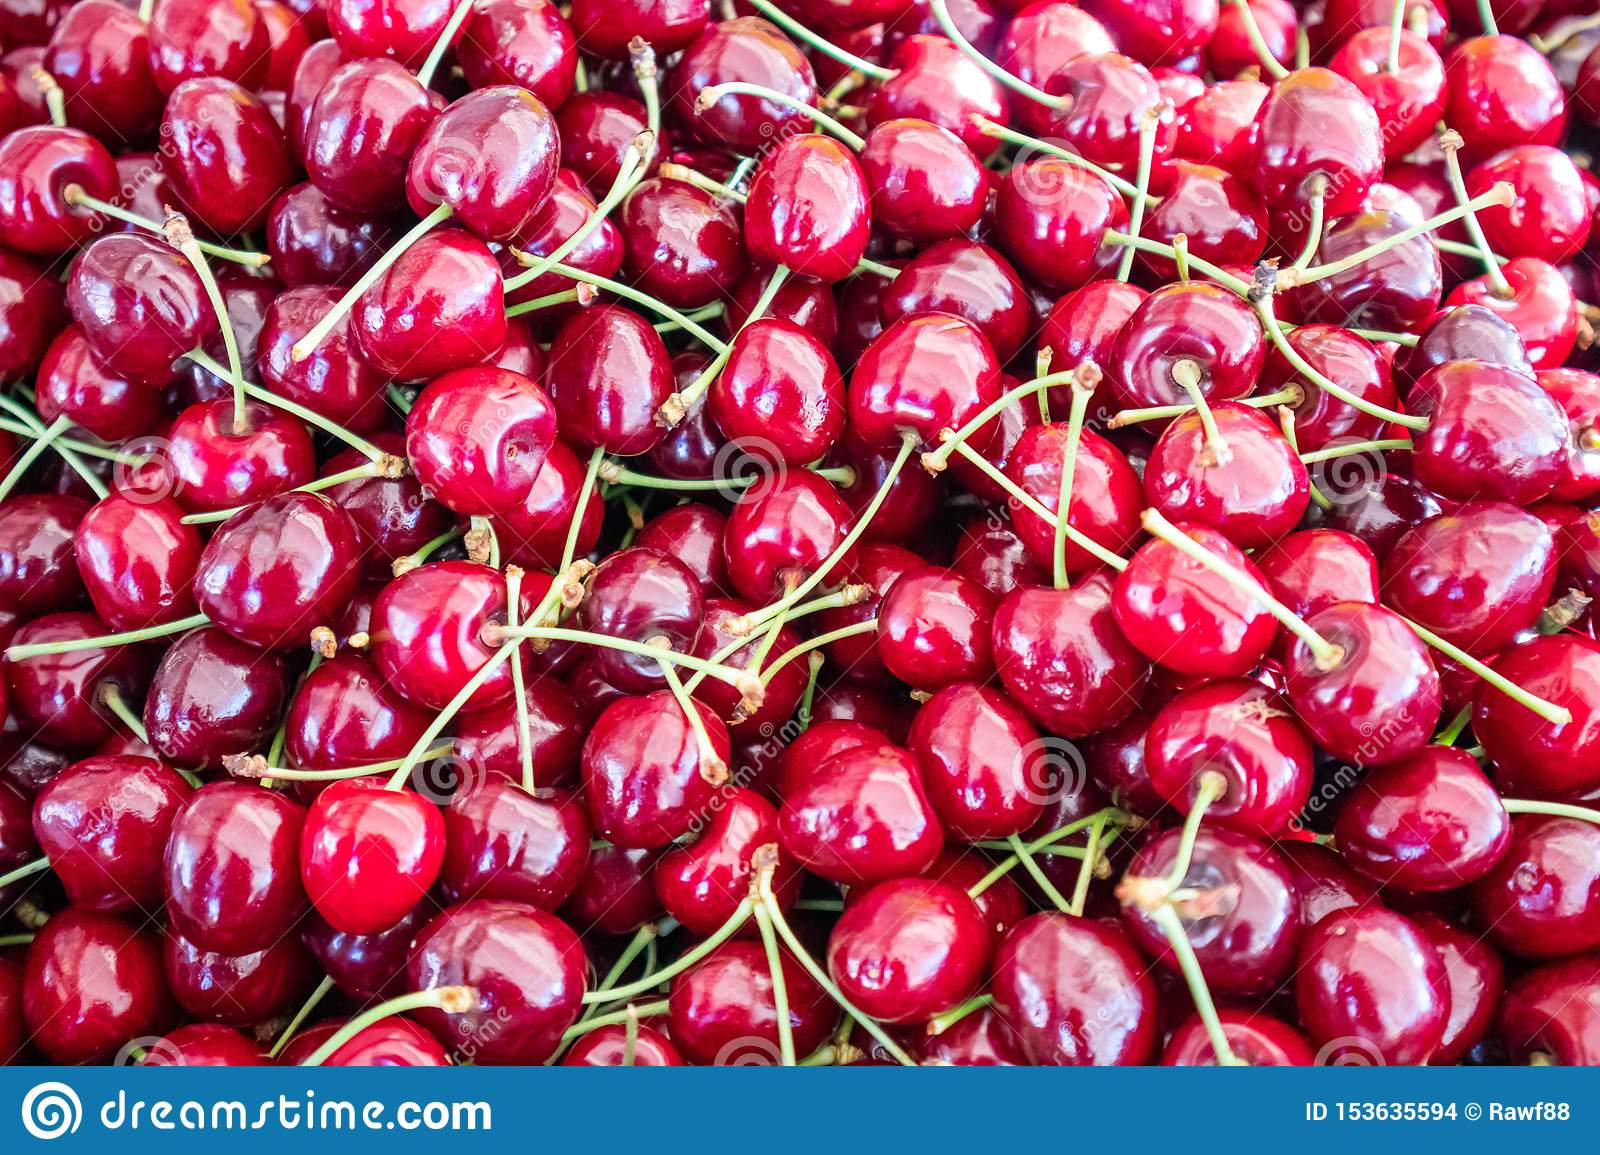 Cherries Pile At Farmers Market Background Texture Stock